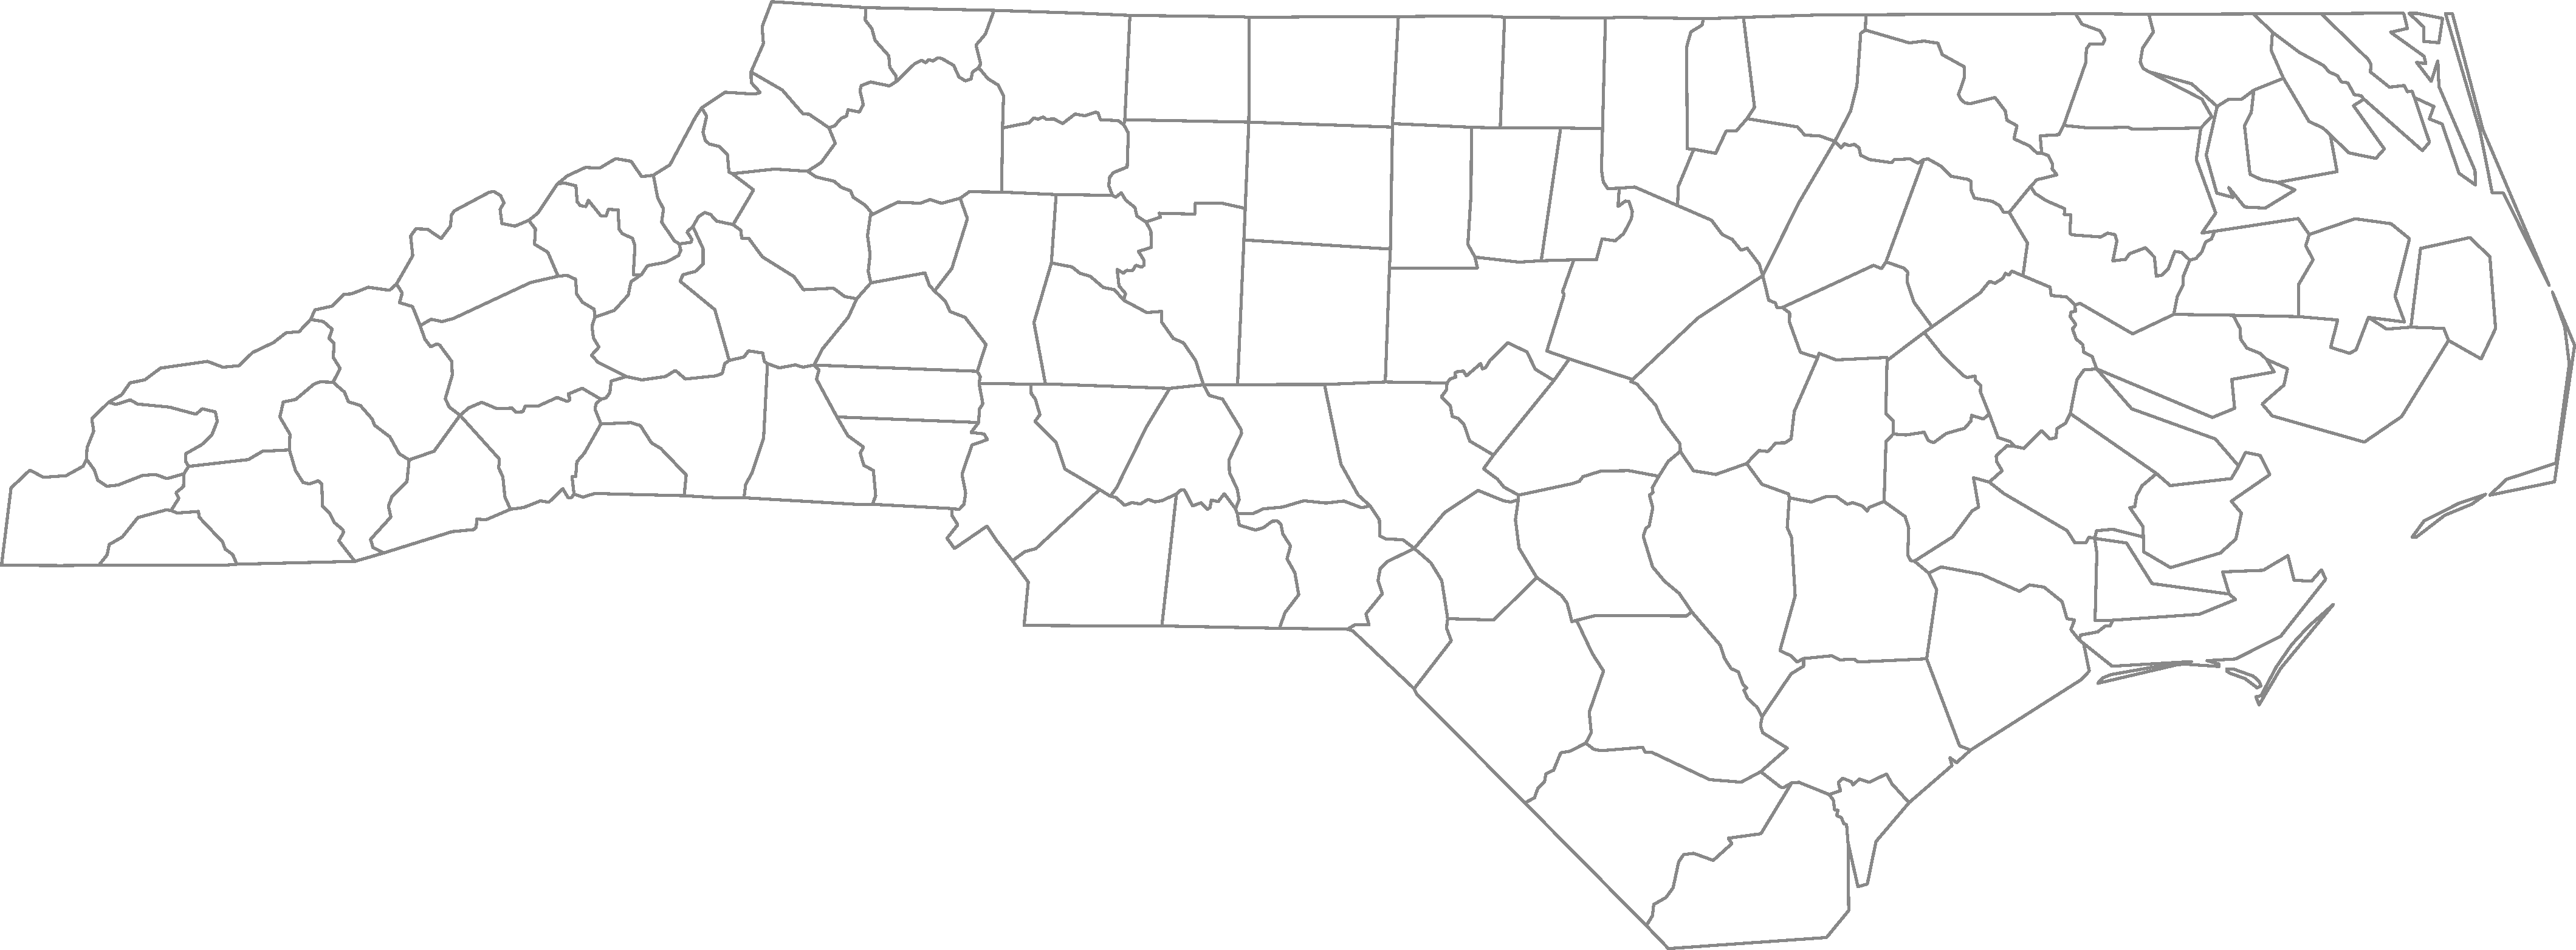 Our Members - North Carolina's Electric Cooperatives | North ... on cherokee county north carolina road map, outer banks north carolina road map, clemmons north carolina road map,